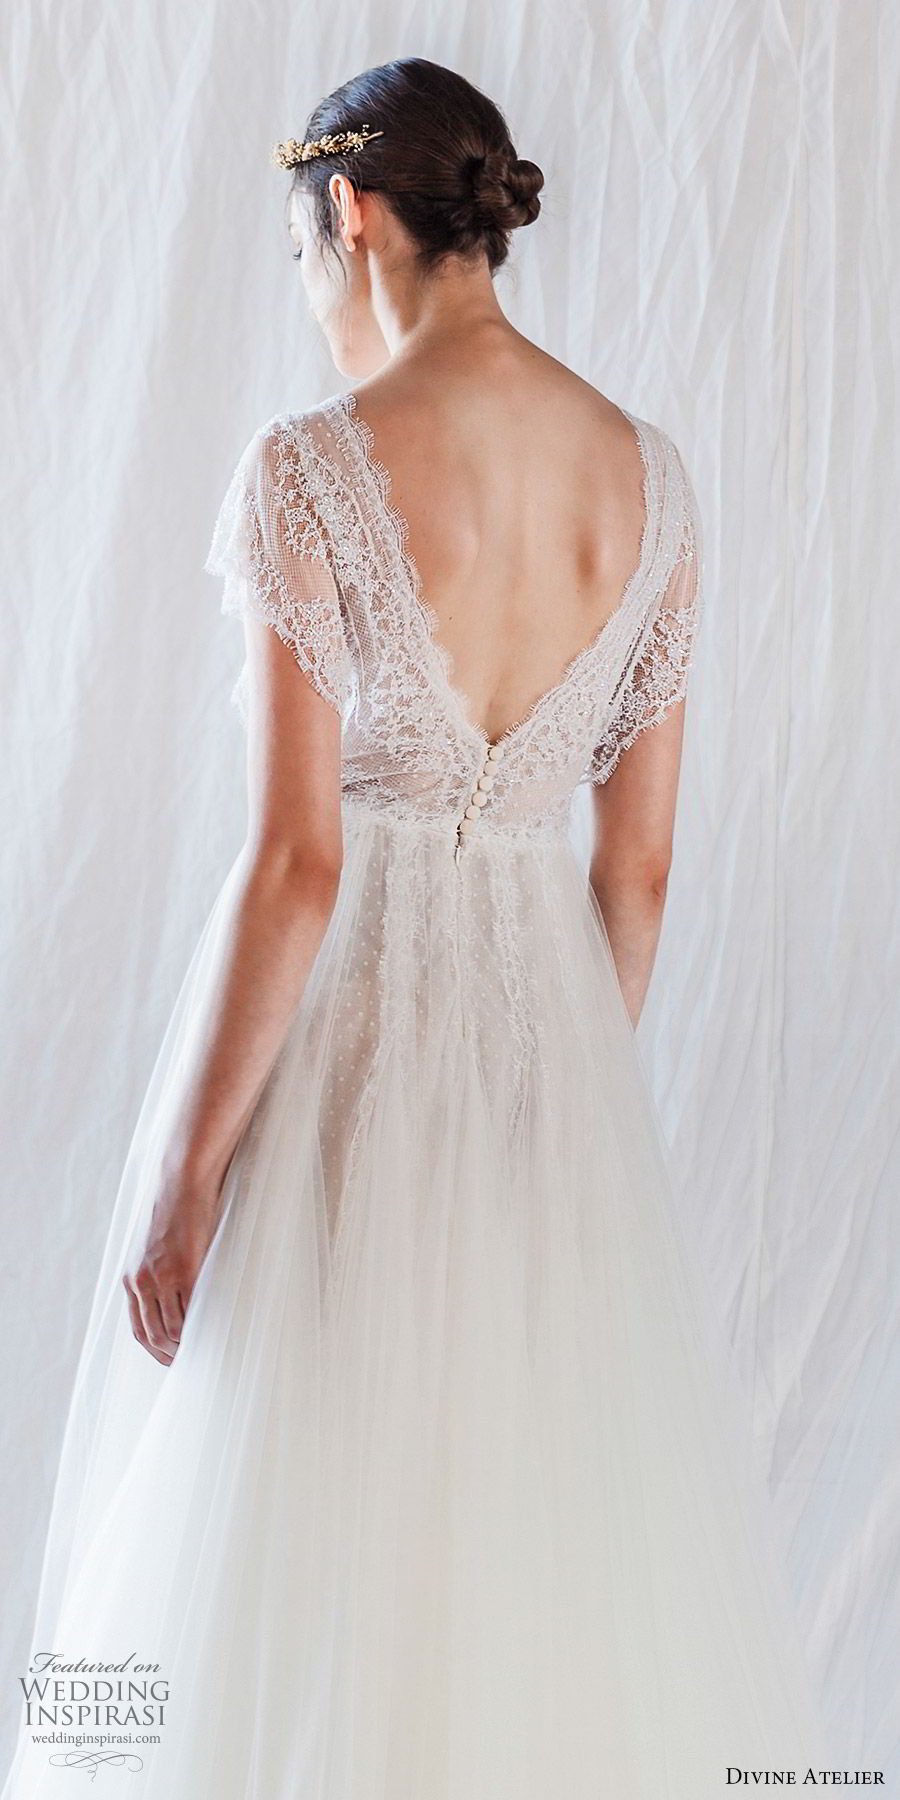 divine atelier 2019 bridal illusion cap sleeves plunging v neck sheer bodice lace a line wedding dress (7) vback sweep train romantic whimsical bv